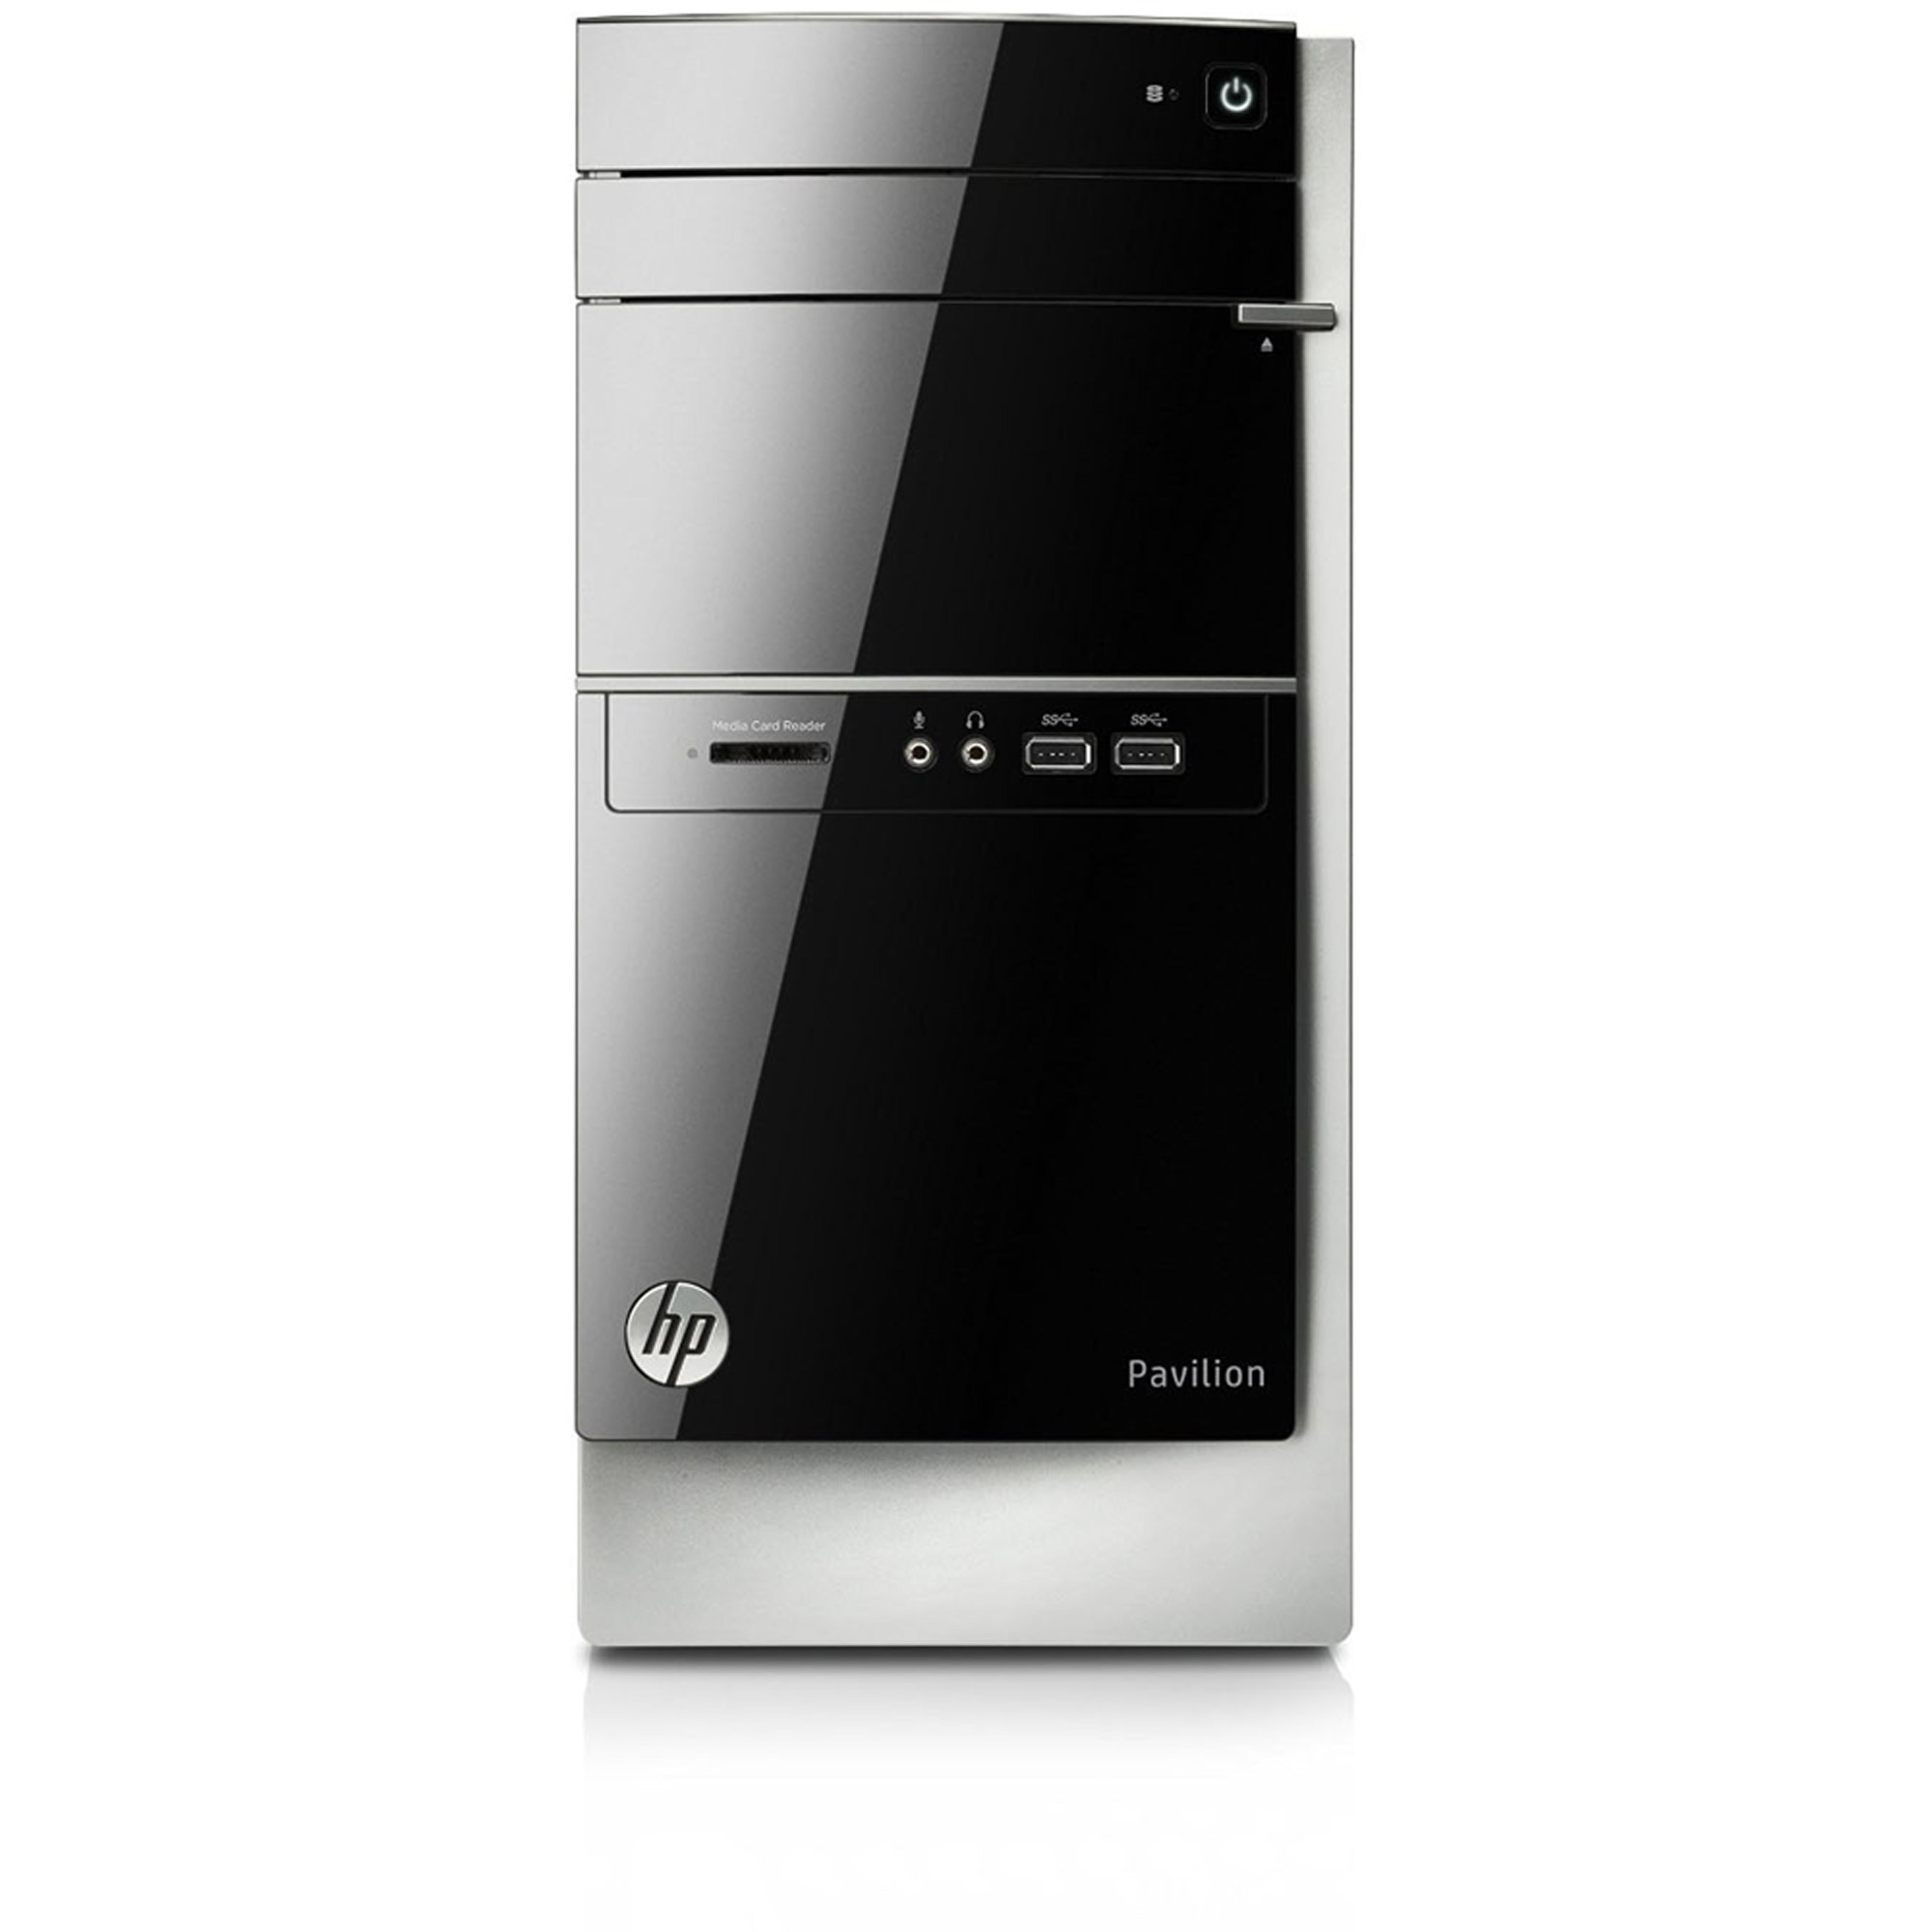 Refurbished HP Gray Pavilion Desktop PC with AMD A8 - 6410 Quad - Core Accelerated Processor, 8GB Memory, 2TB Hard Drive and Windows 8.1 (Monitor Not Included) (Eligible for Free Windows 10 Upgrade)